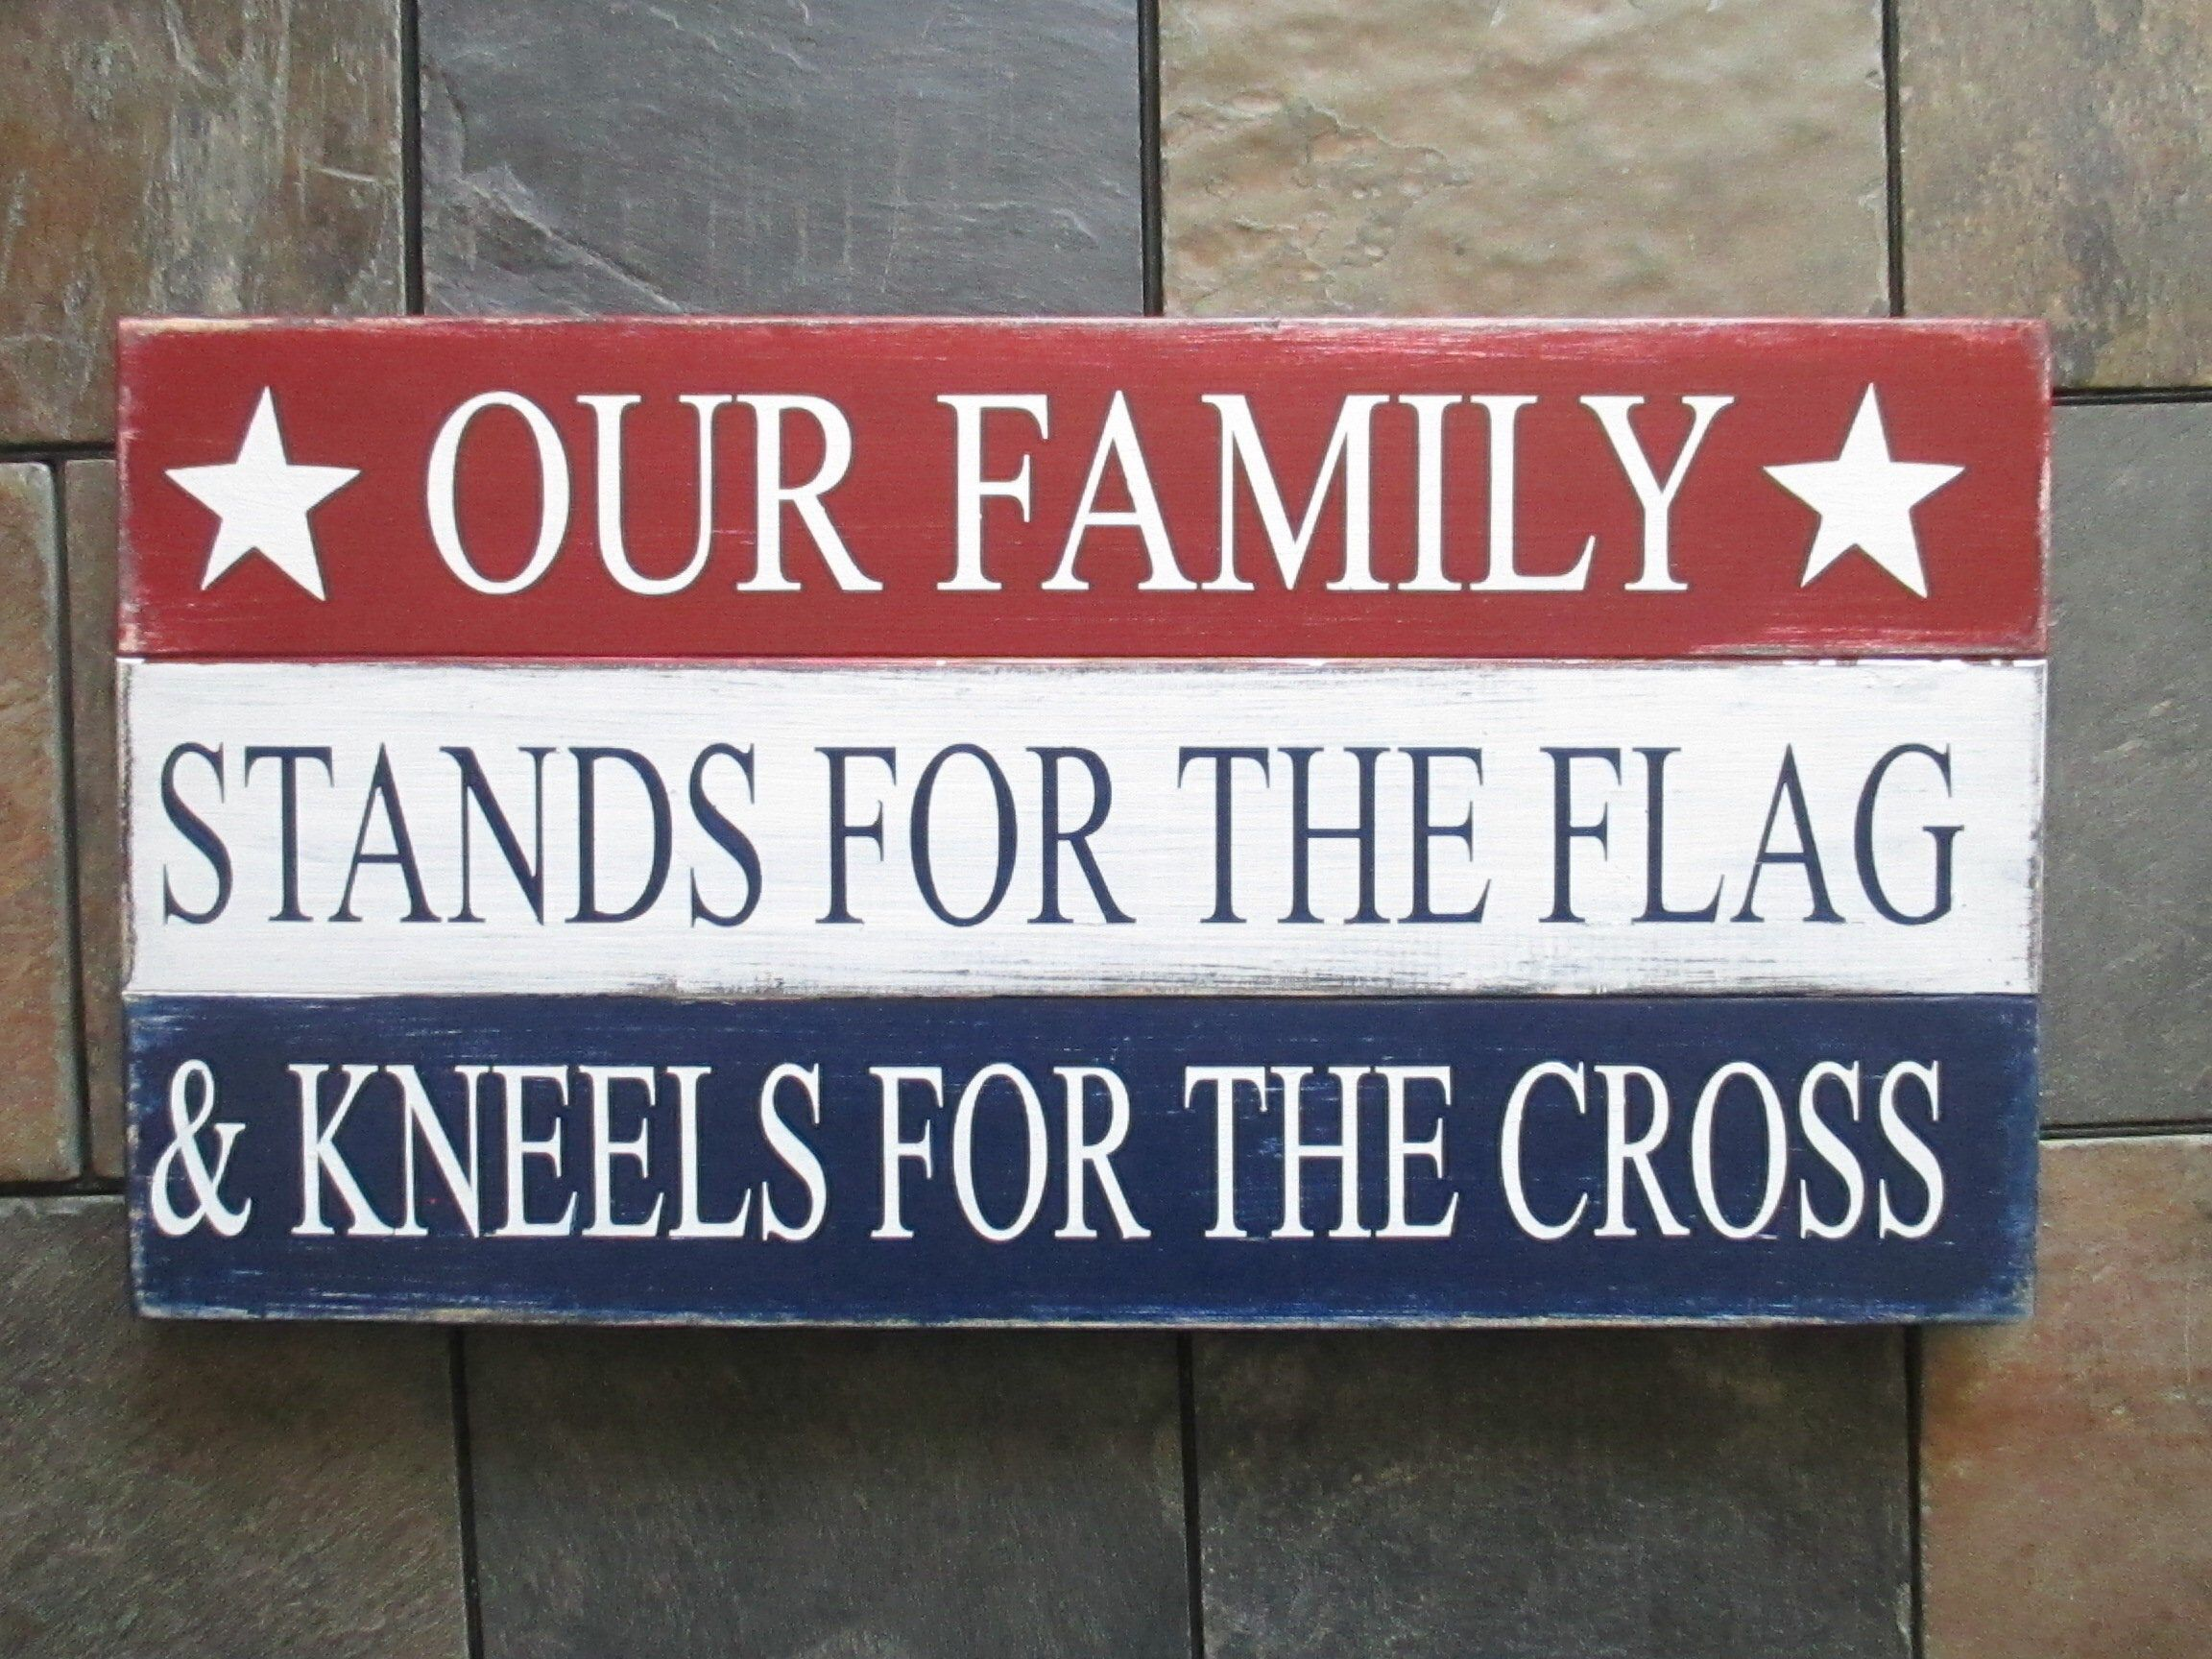 Our Family Stands for the Flag & Kneels for the Cross Rustic Sign, American Flag Decor, 20 x 10.5, Patriotic American, Veterans Military